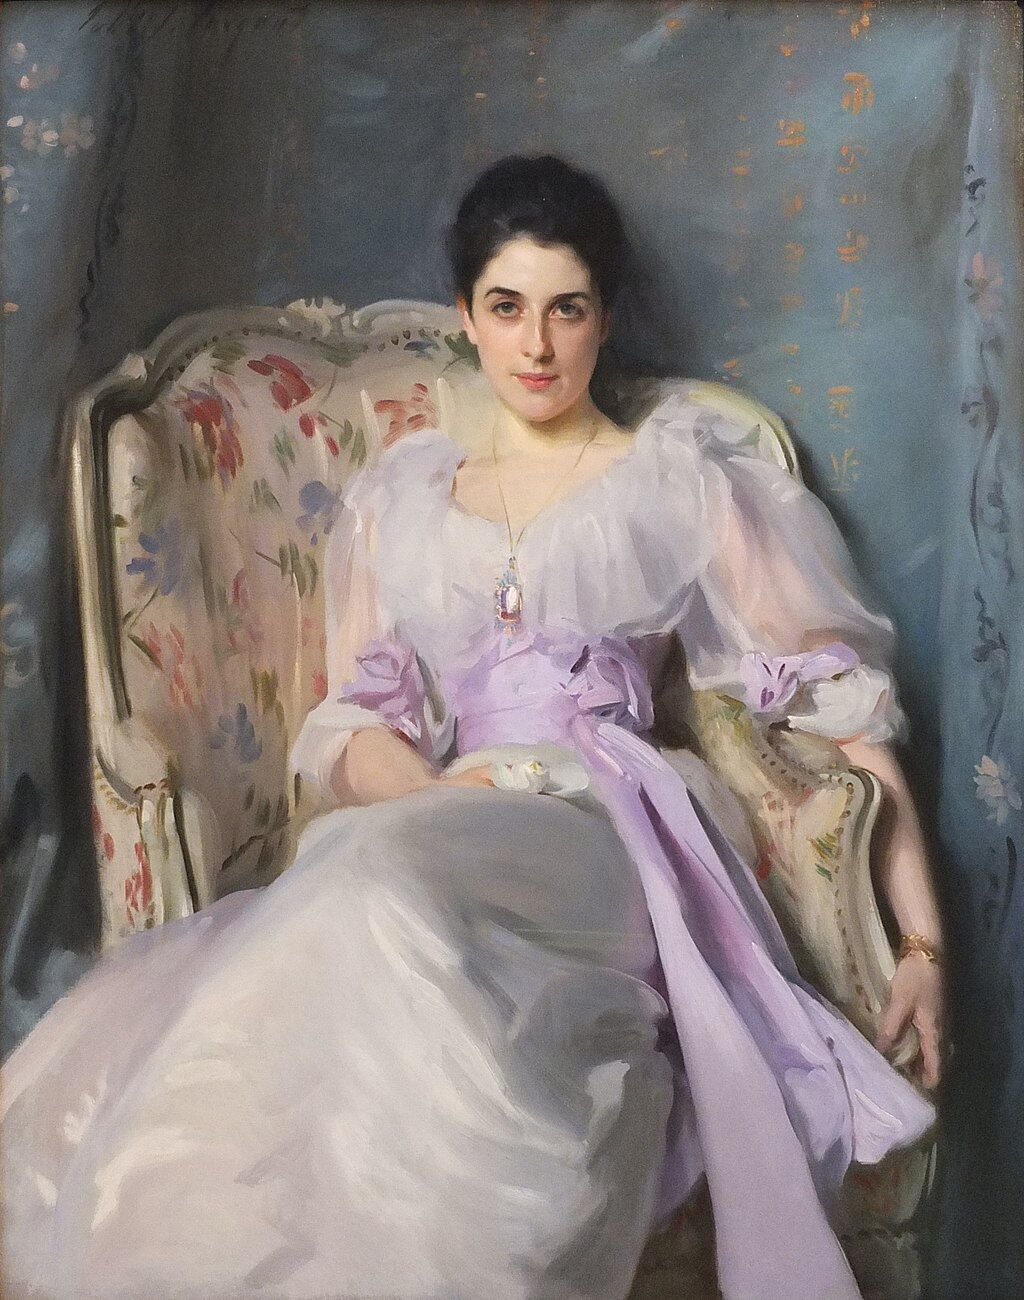 John Singer Sargent, Portrait of Lady Agnew of Lochnaw, 1892. Image via Wikimedia Commons.